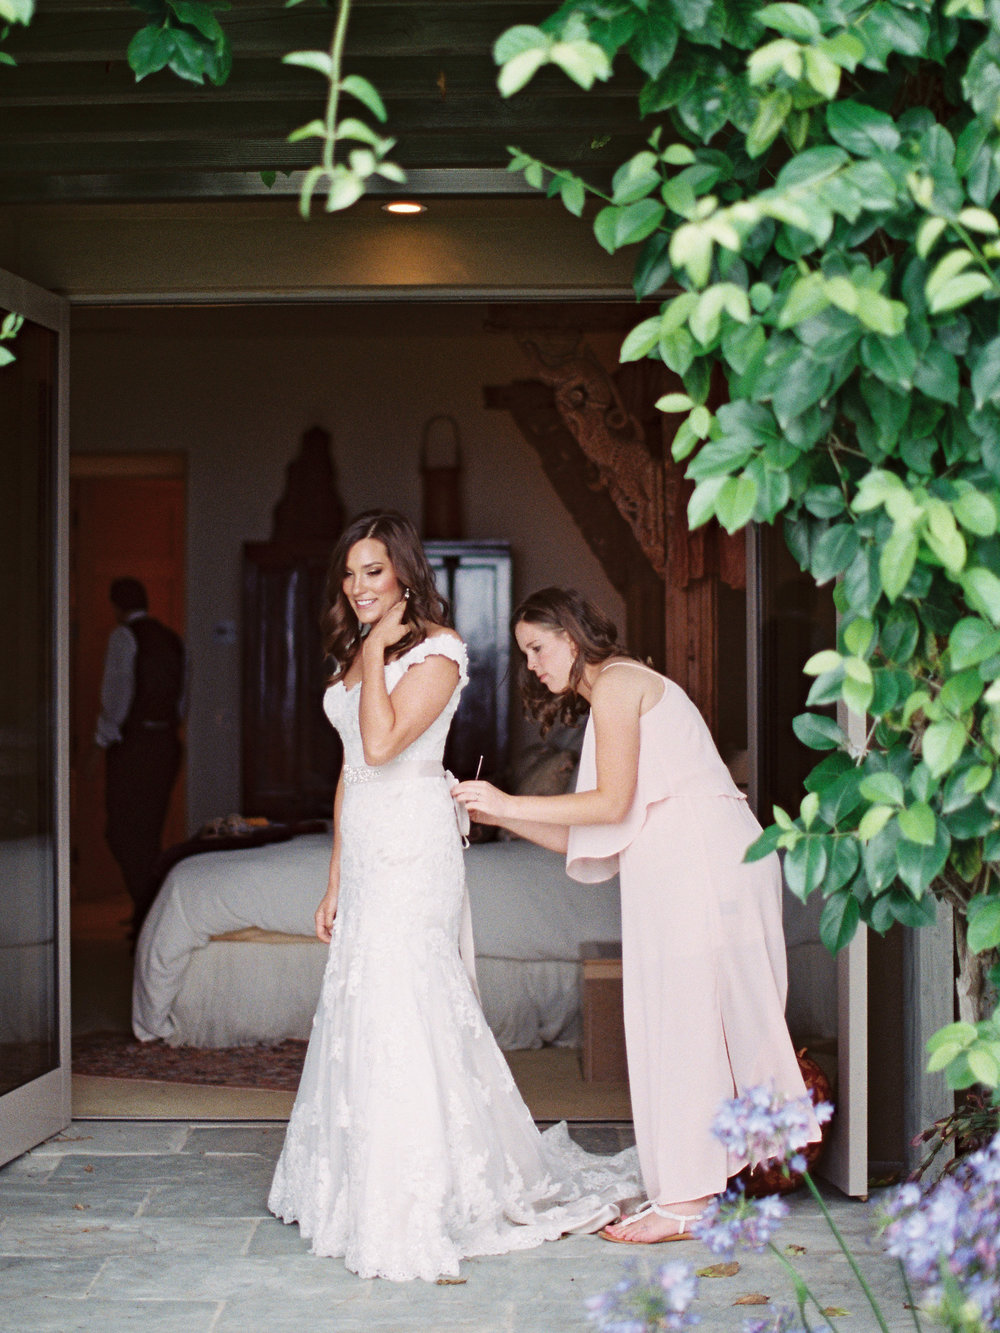 santabarbarawedding.com | photo: Jeremiah and Rachel Photography | Real wedding at the Belmond El Encanto